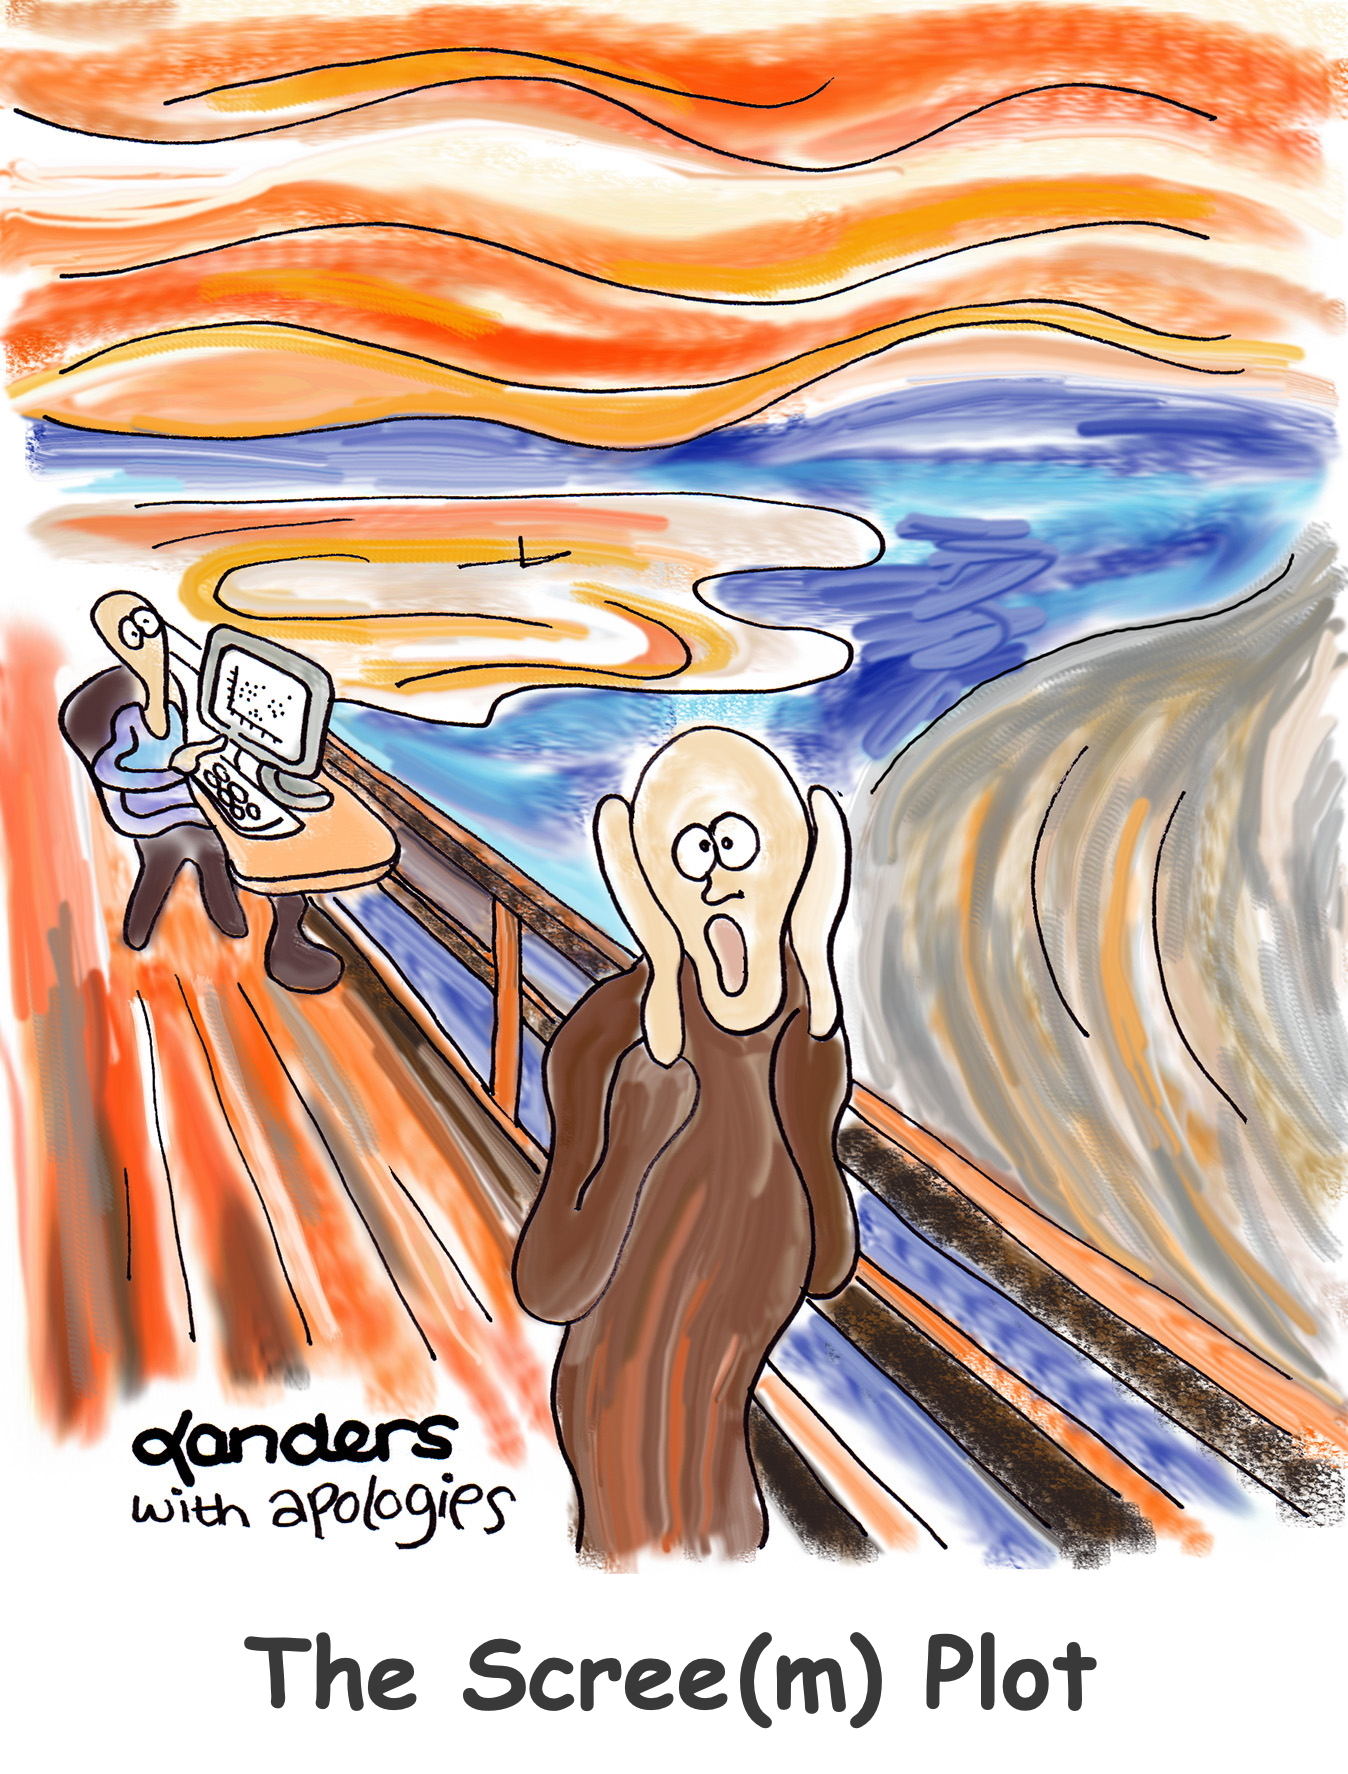 cartoon depiction of Edvard Munch's The Scream